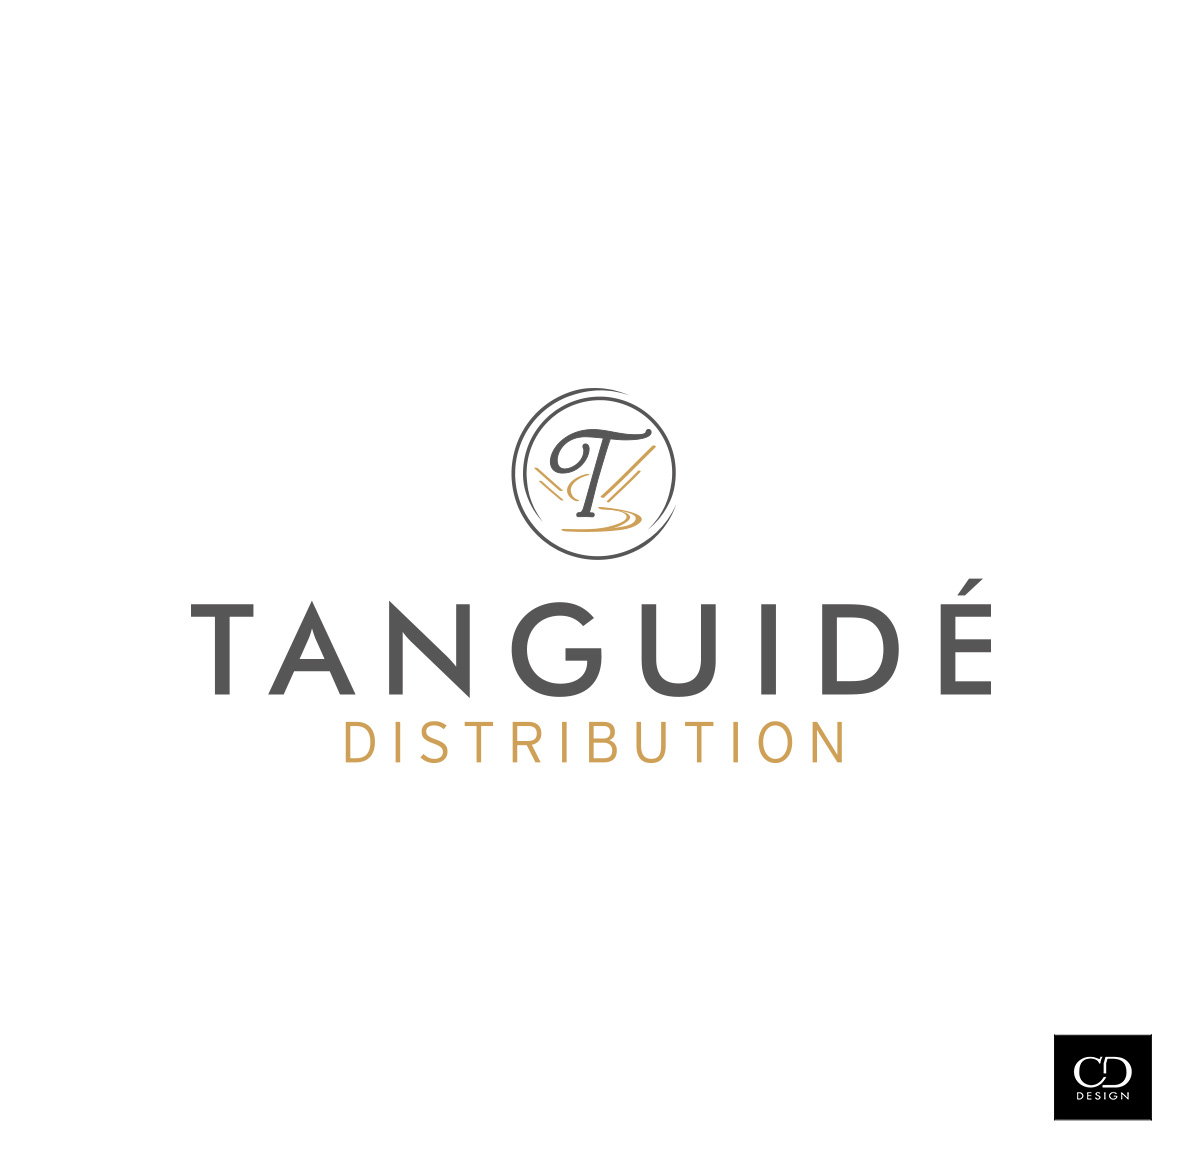 Tanguidé Distribution